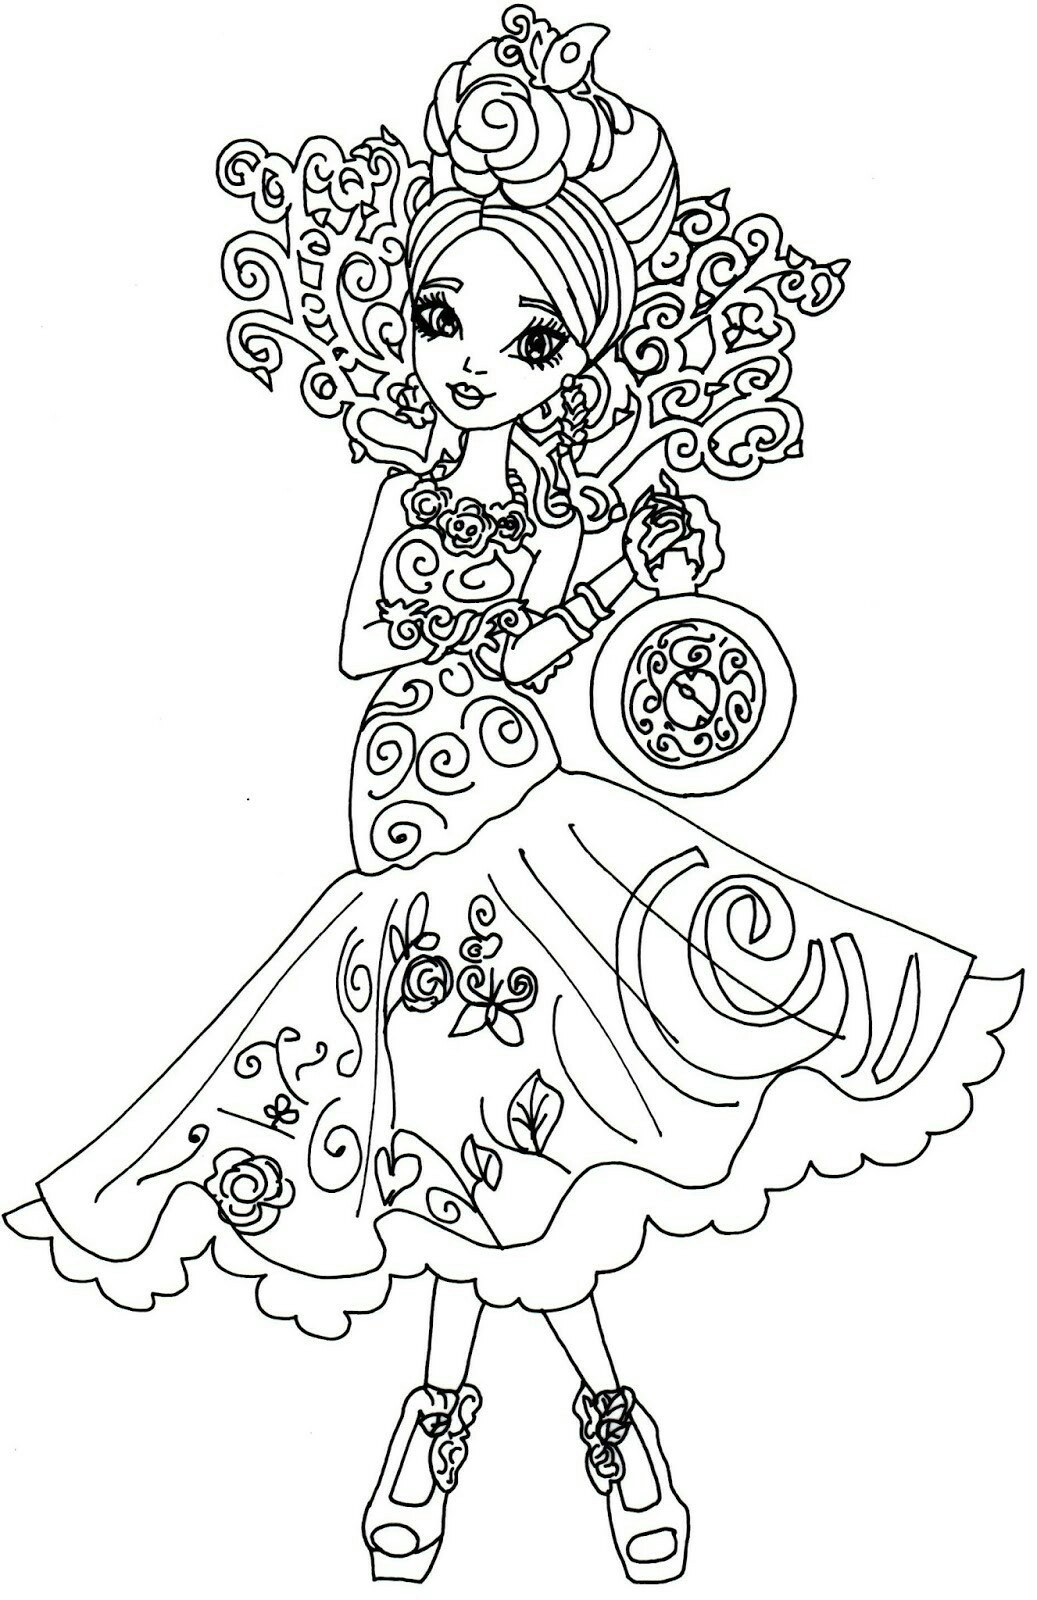 1037x1600 Ever After High Coloring Pages Raven Legacy Day To Print